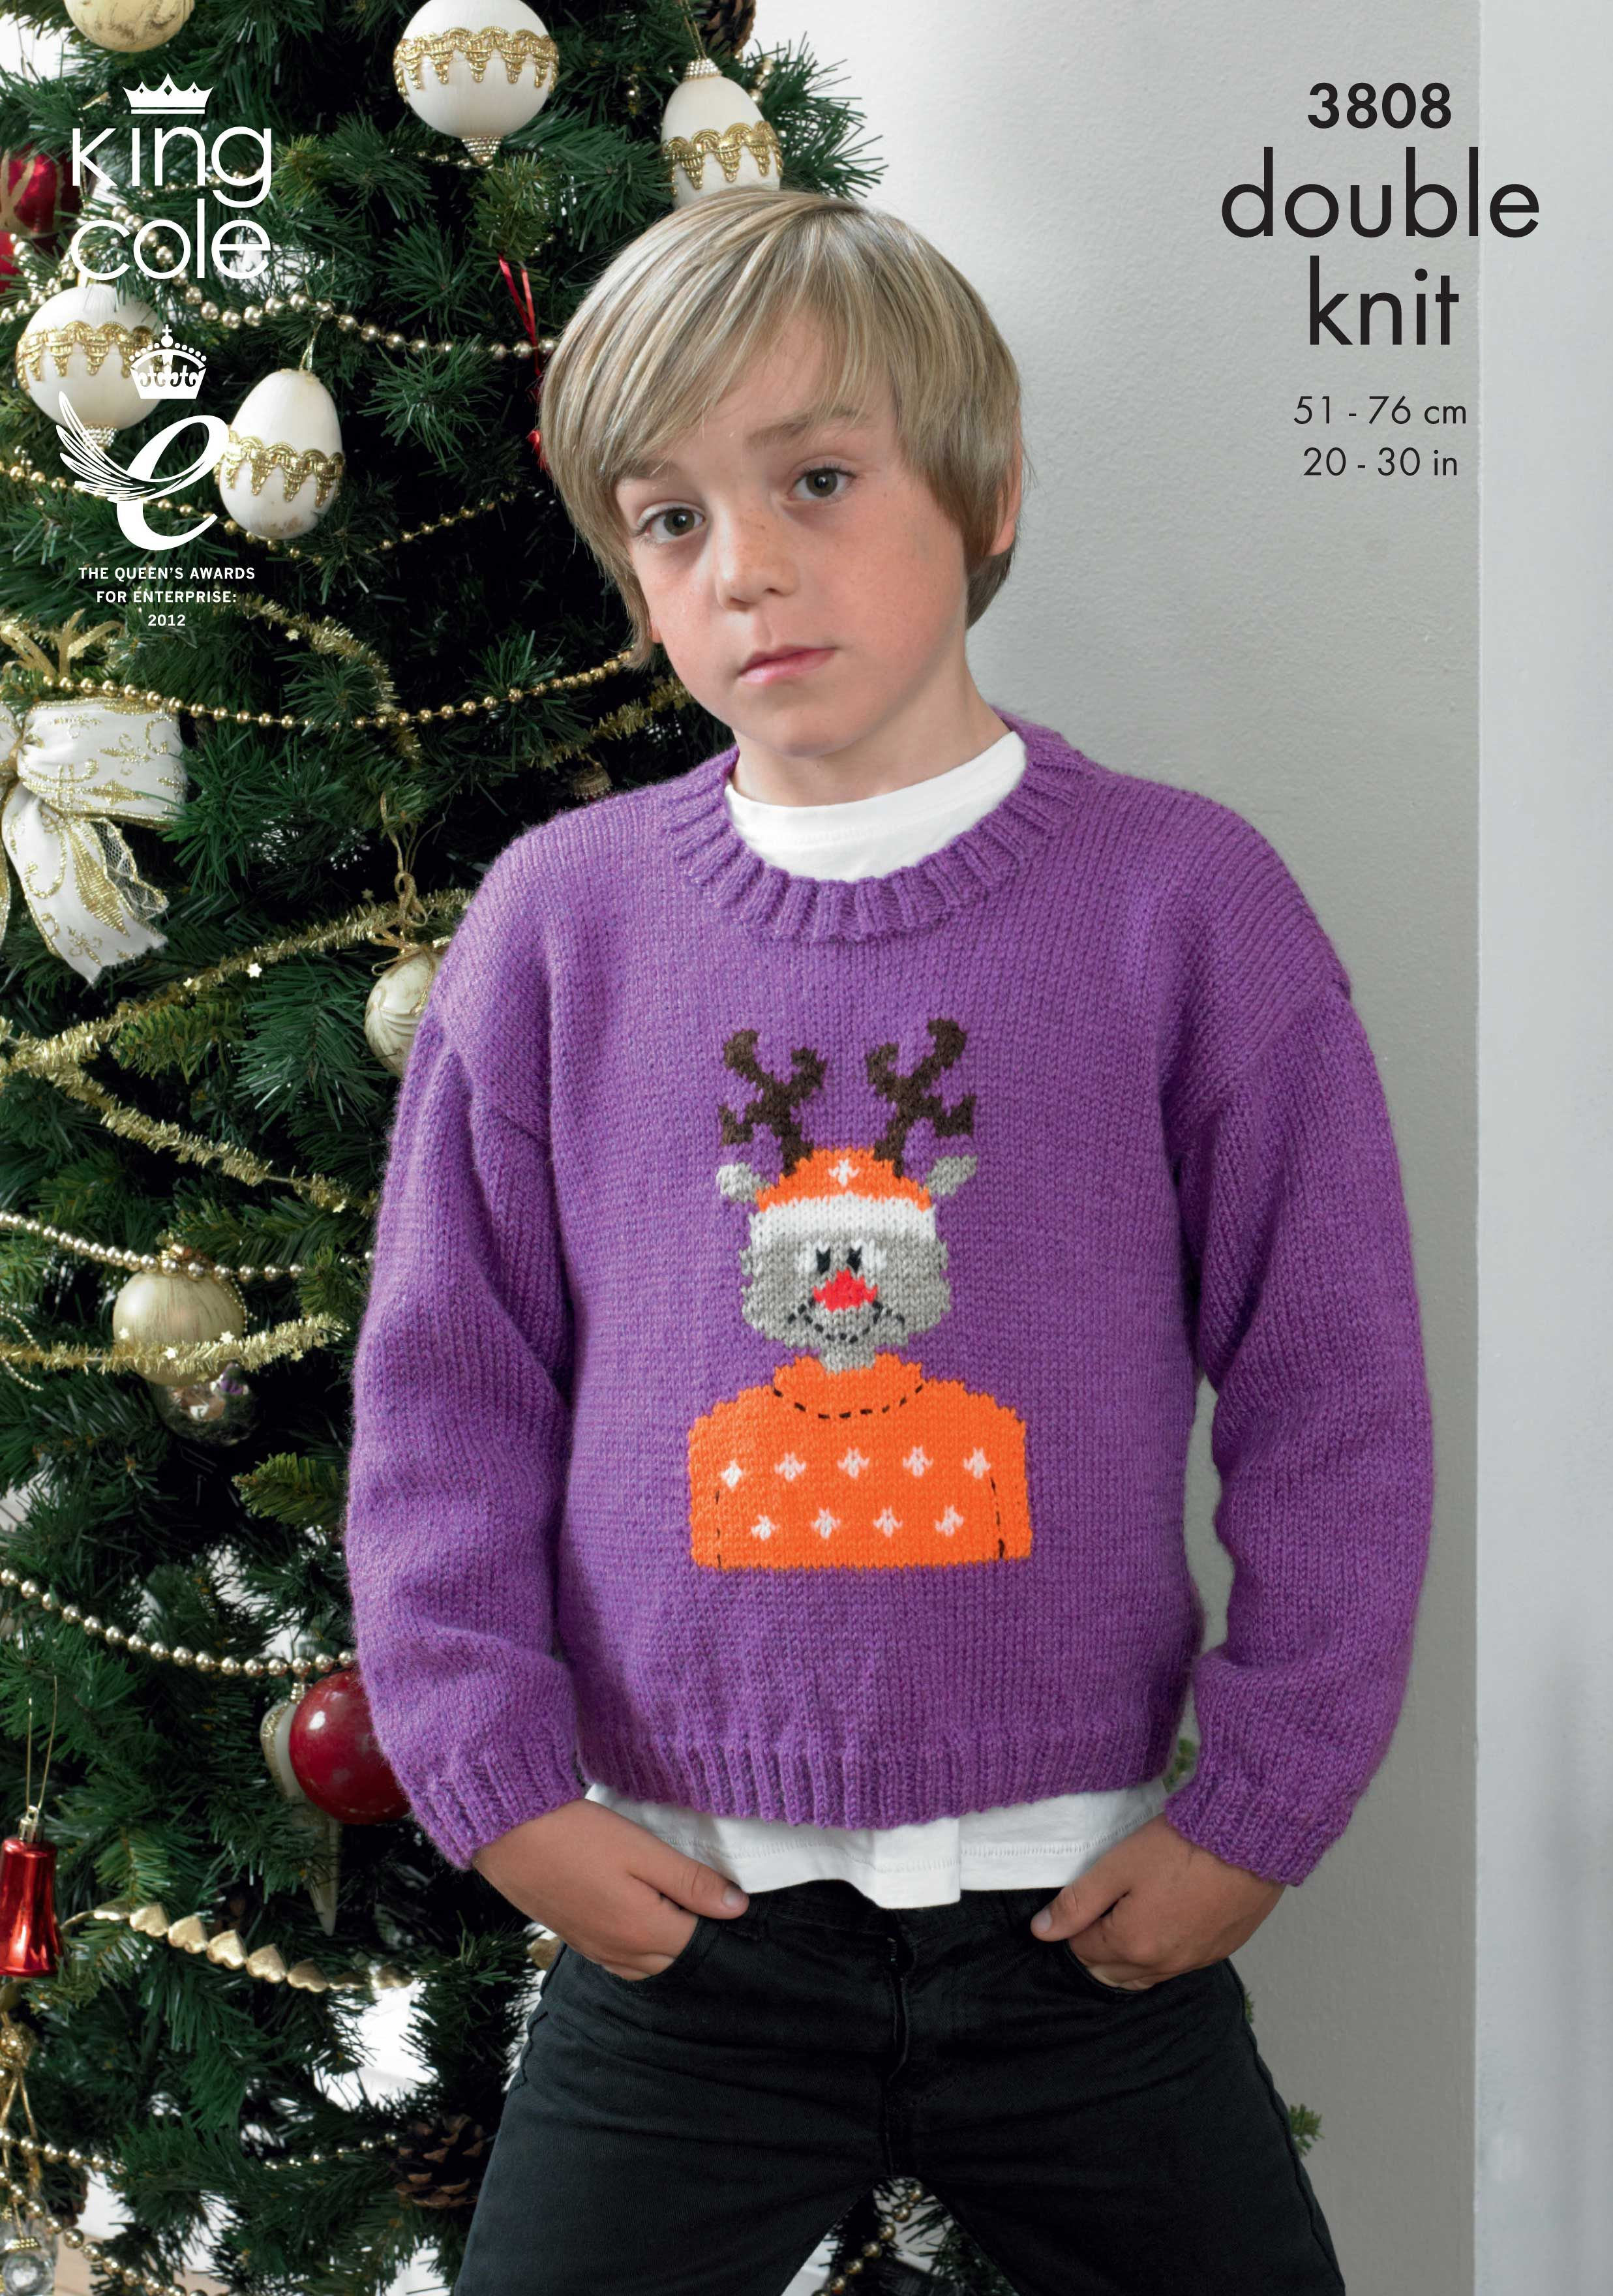 Childrens christmas jumper pattern rudolph knitted sweater king childrens christmas jumper pattern rudolph knitted sweater king cole christmas knitting bankloansurffo Image collections